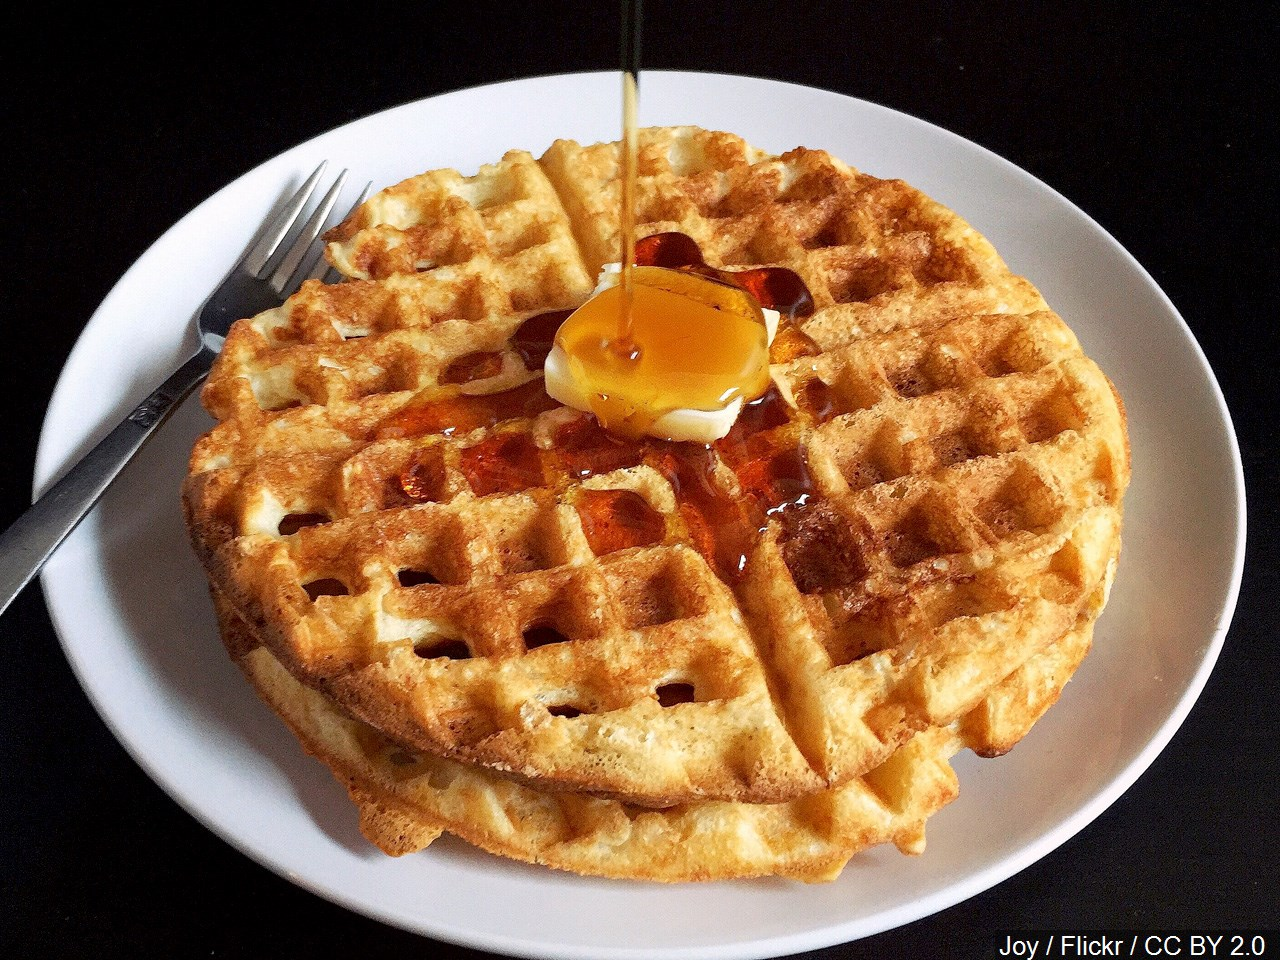 Waffle with butter and syrup